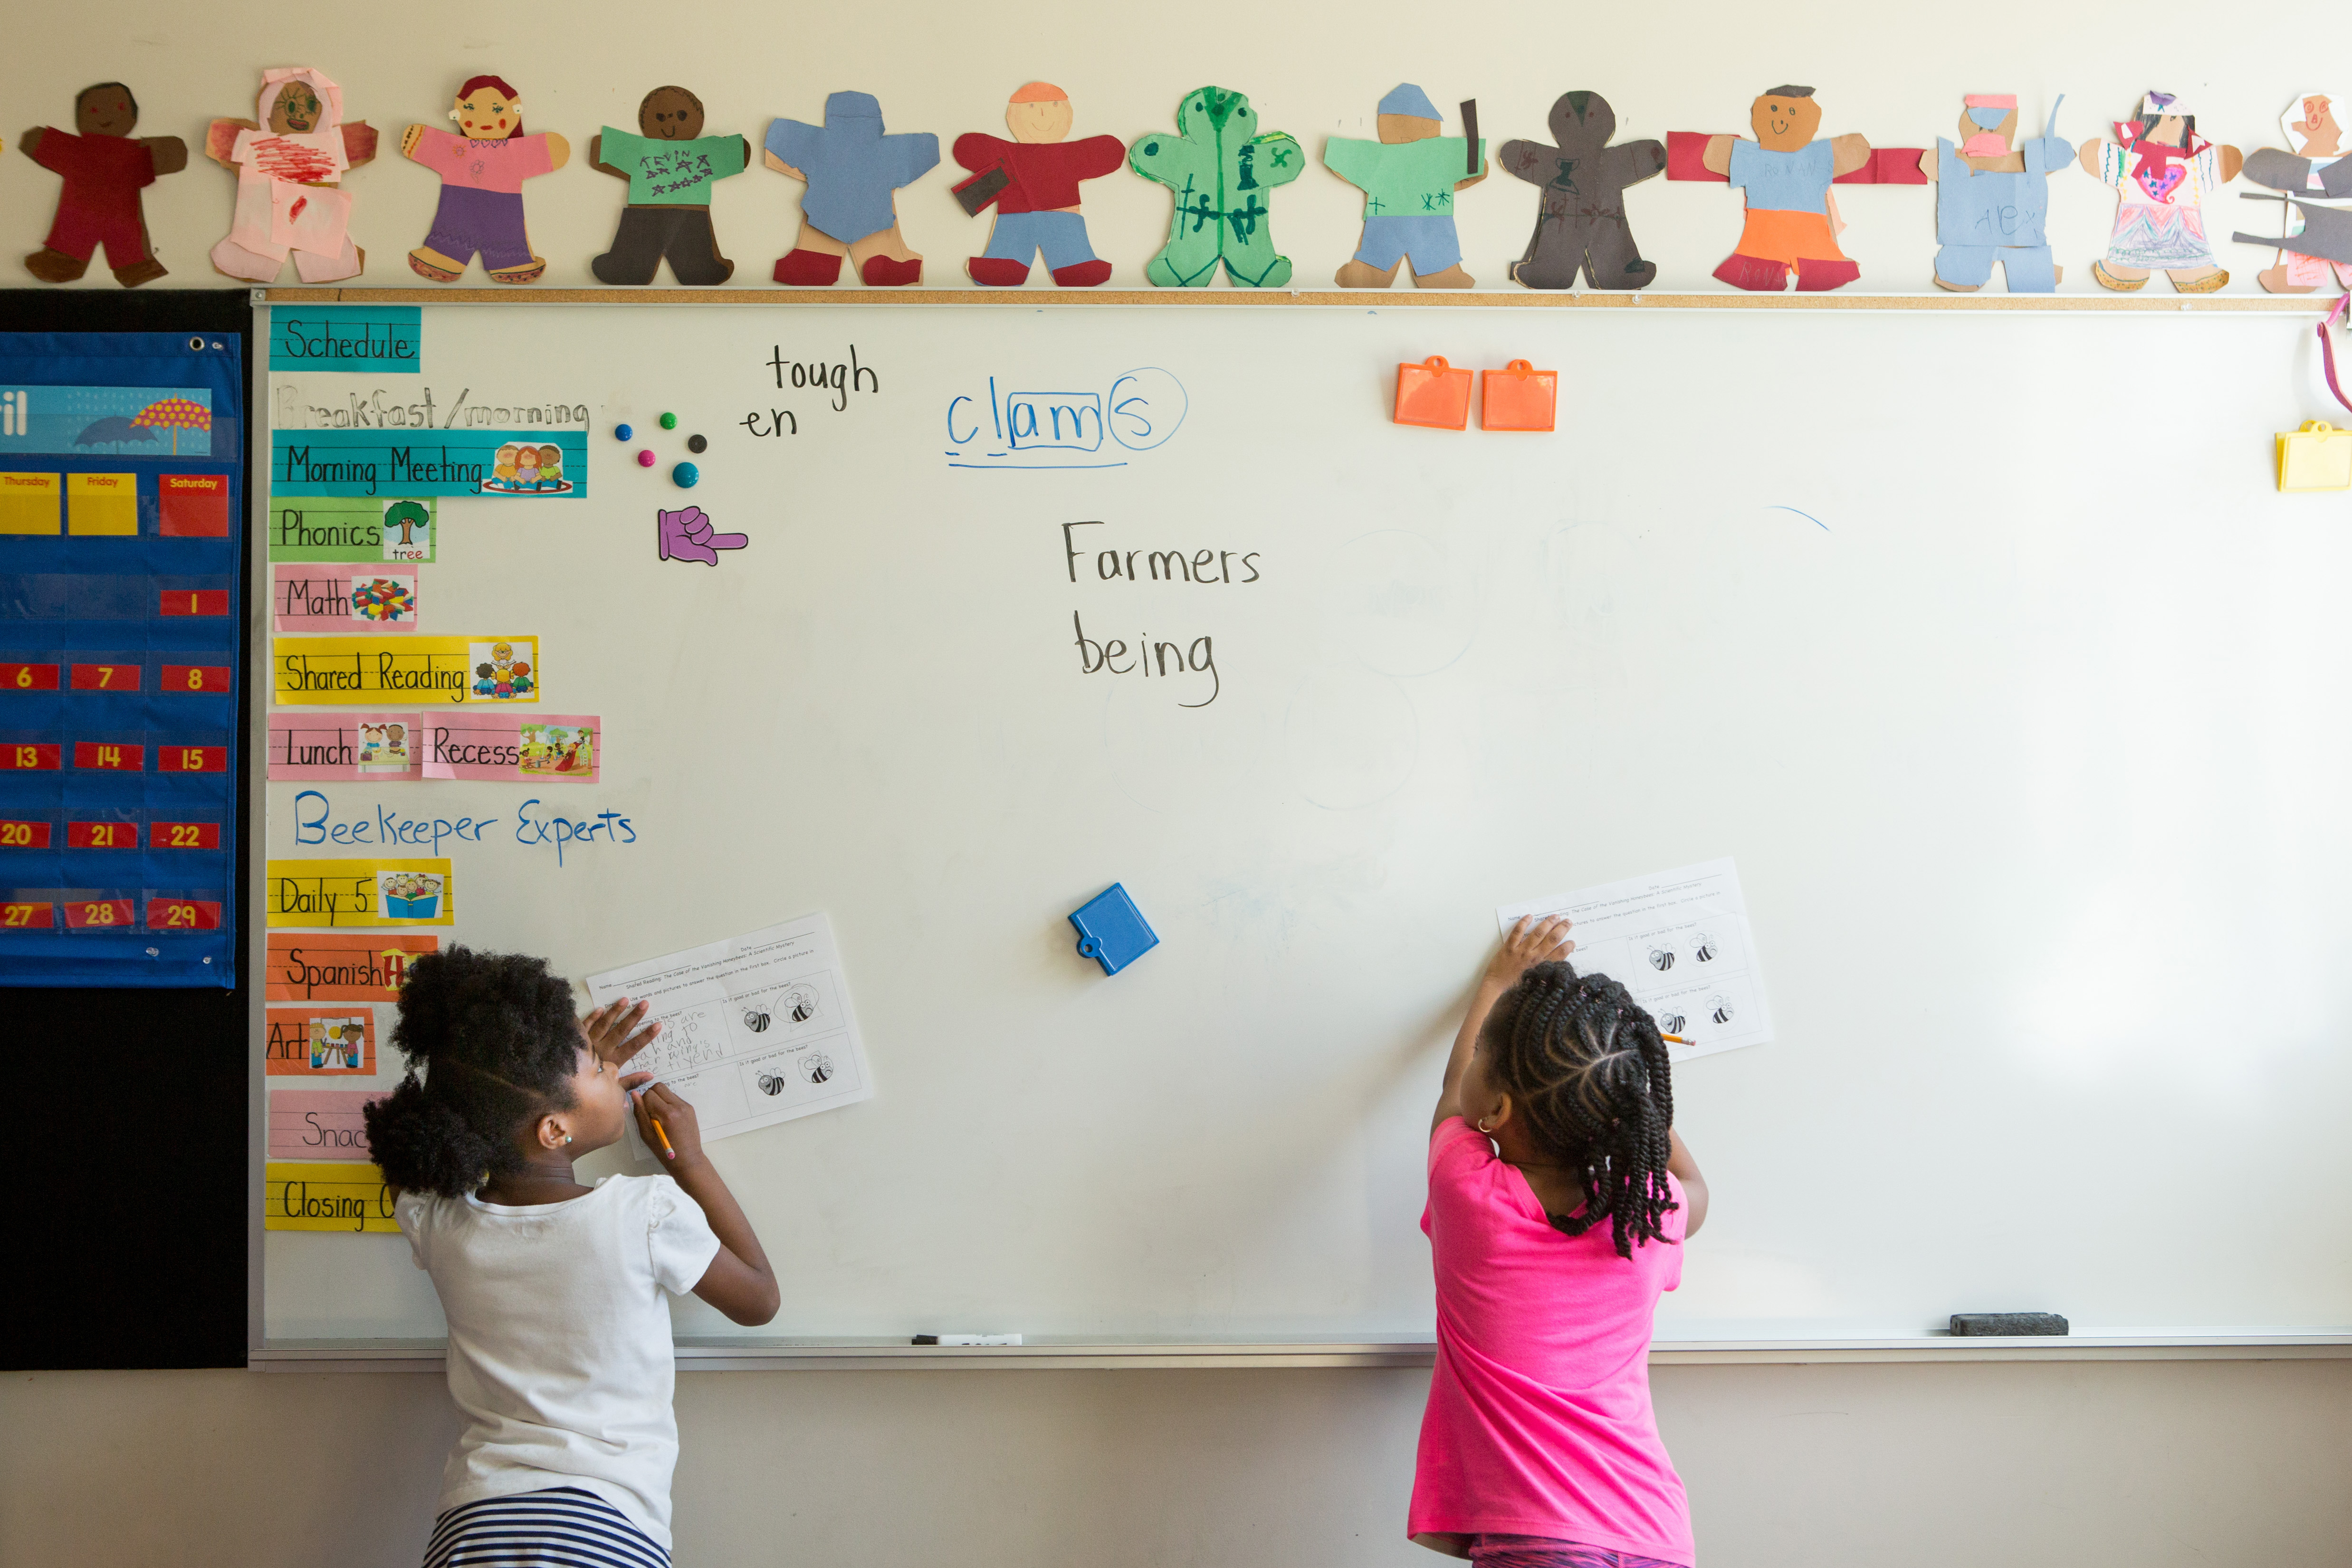 Two young girls are at a chalkboard outlined by colorful art.